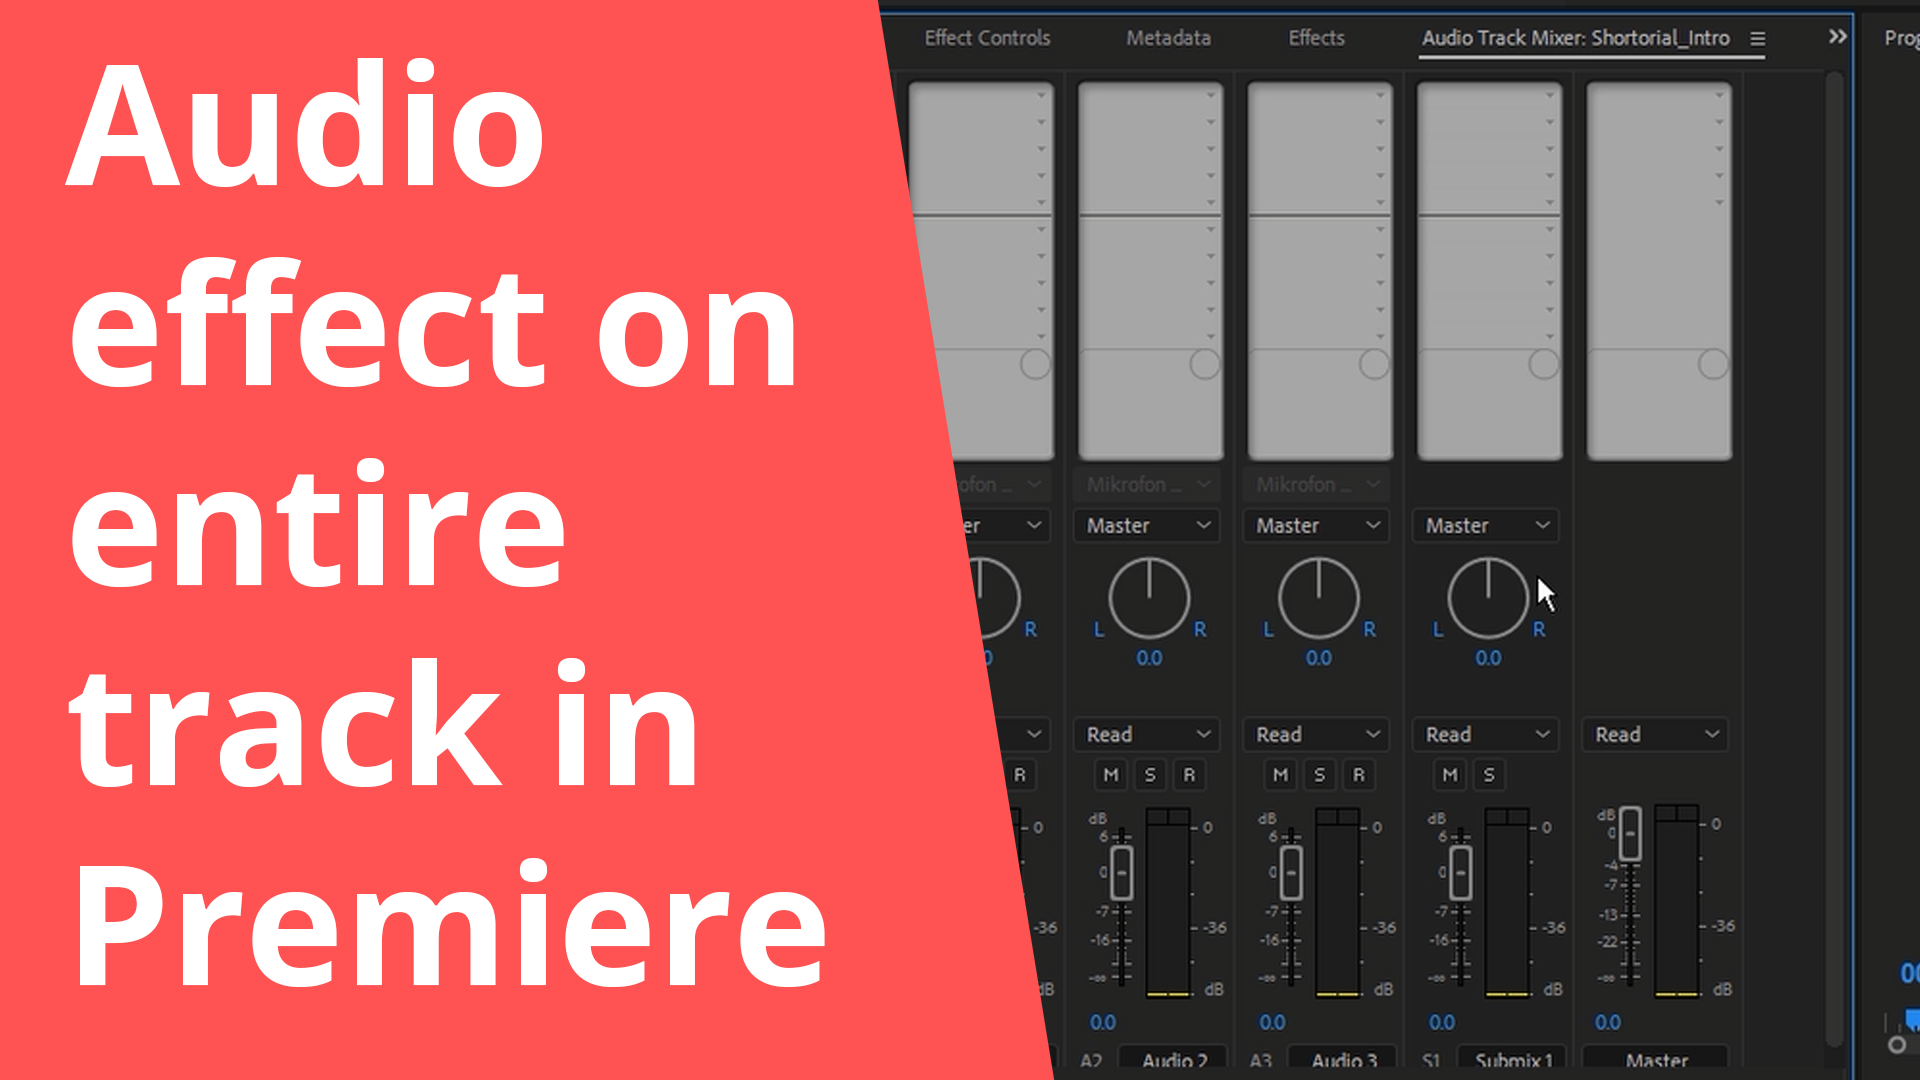 Audio effect on entire track in Premiere